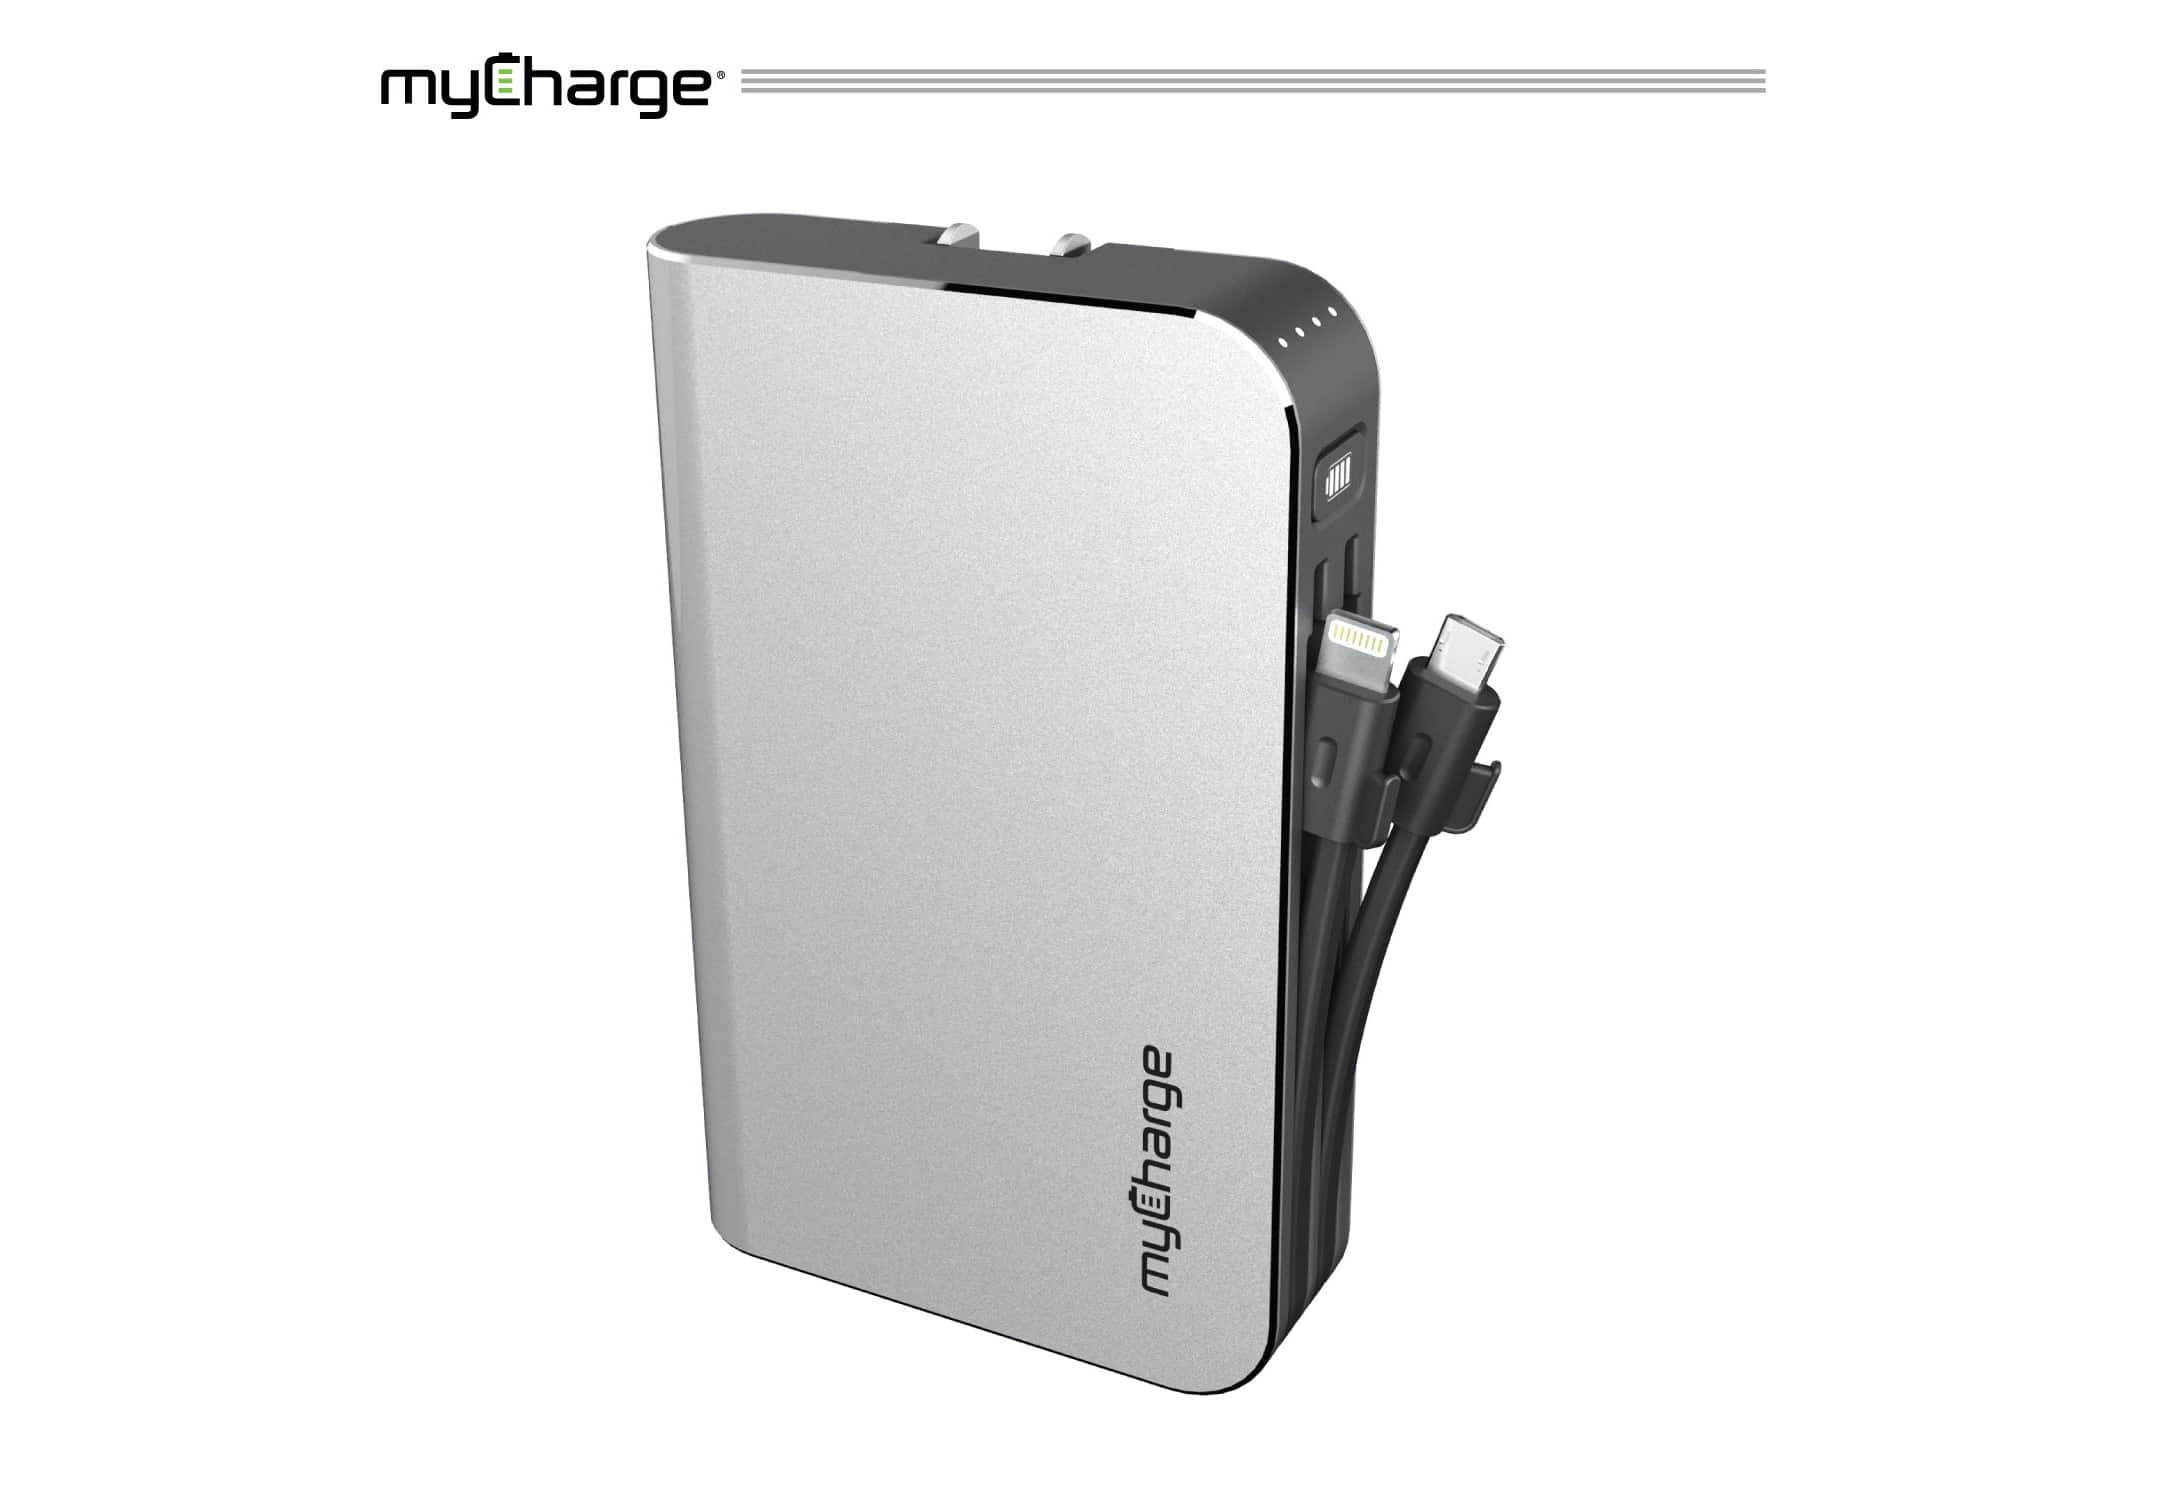 myCharge Portable Charger Power Bank-min